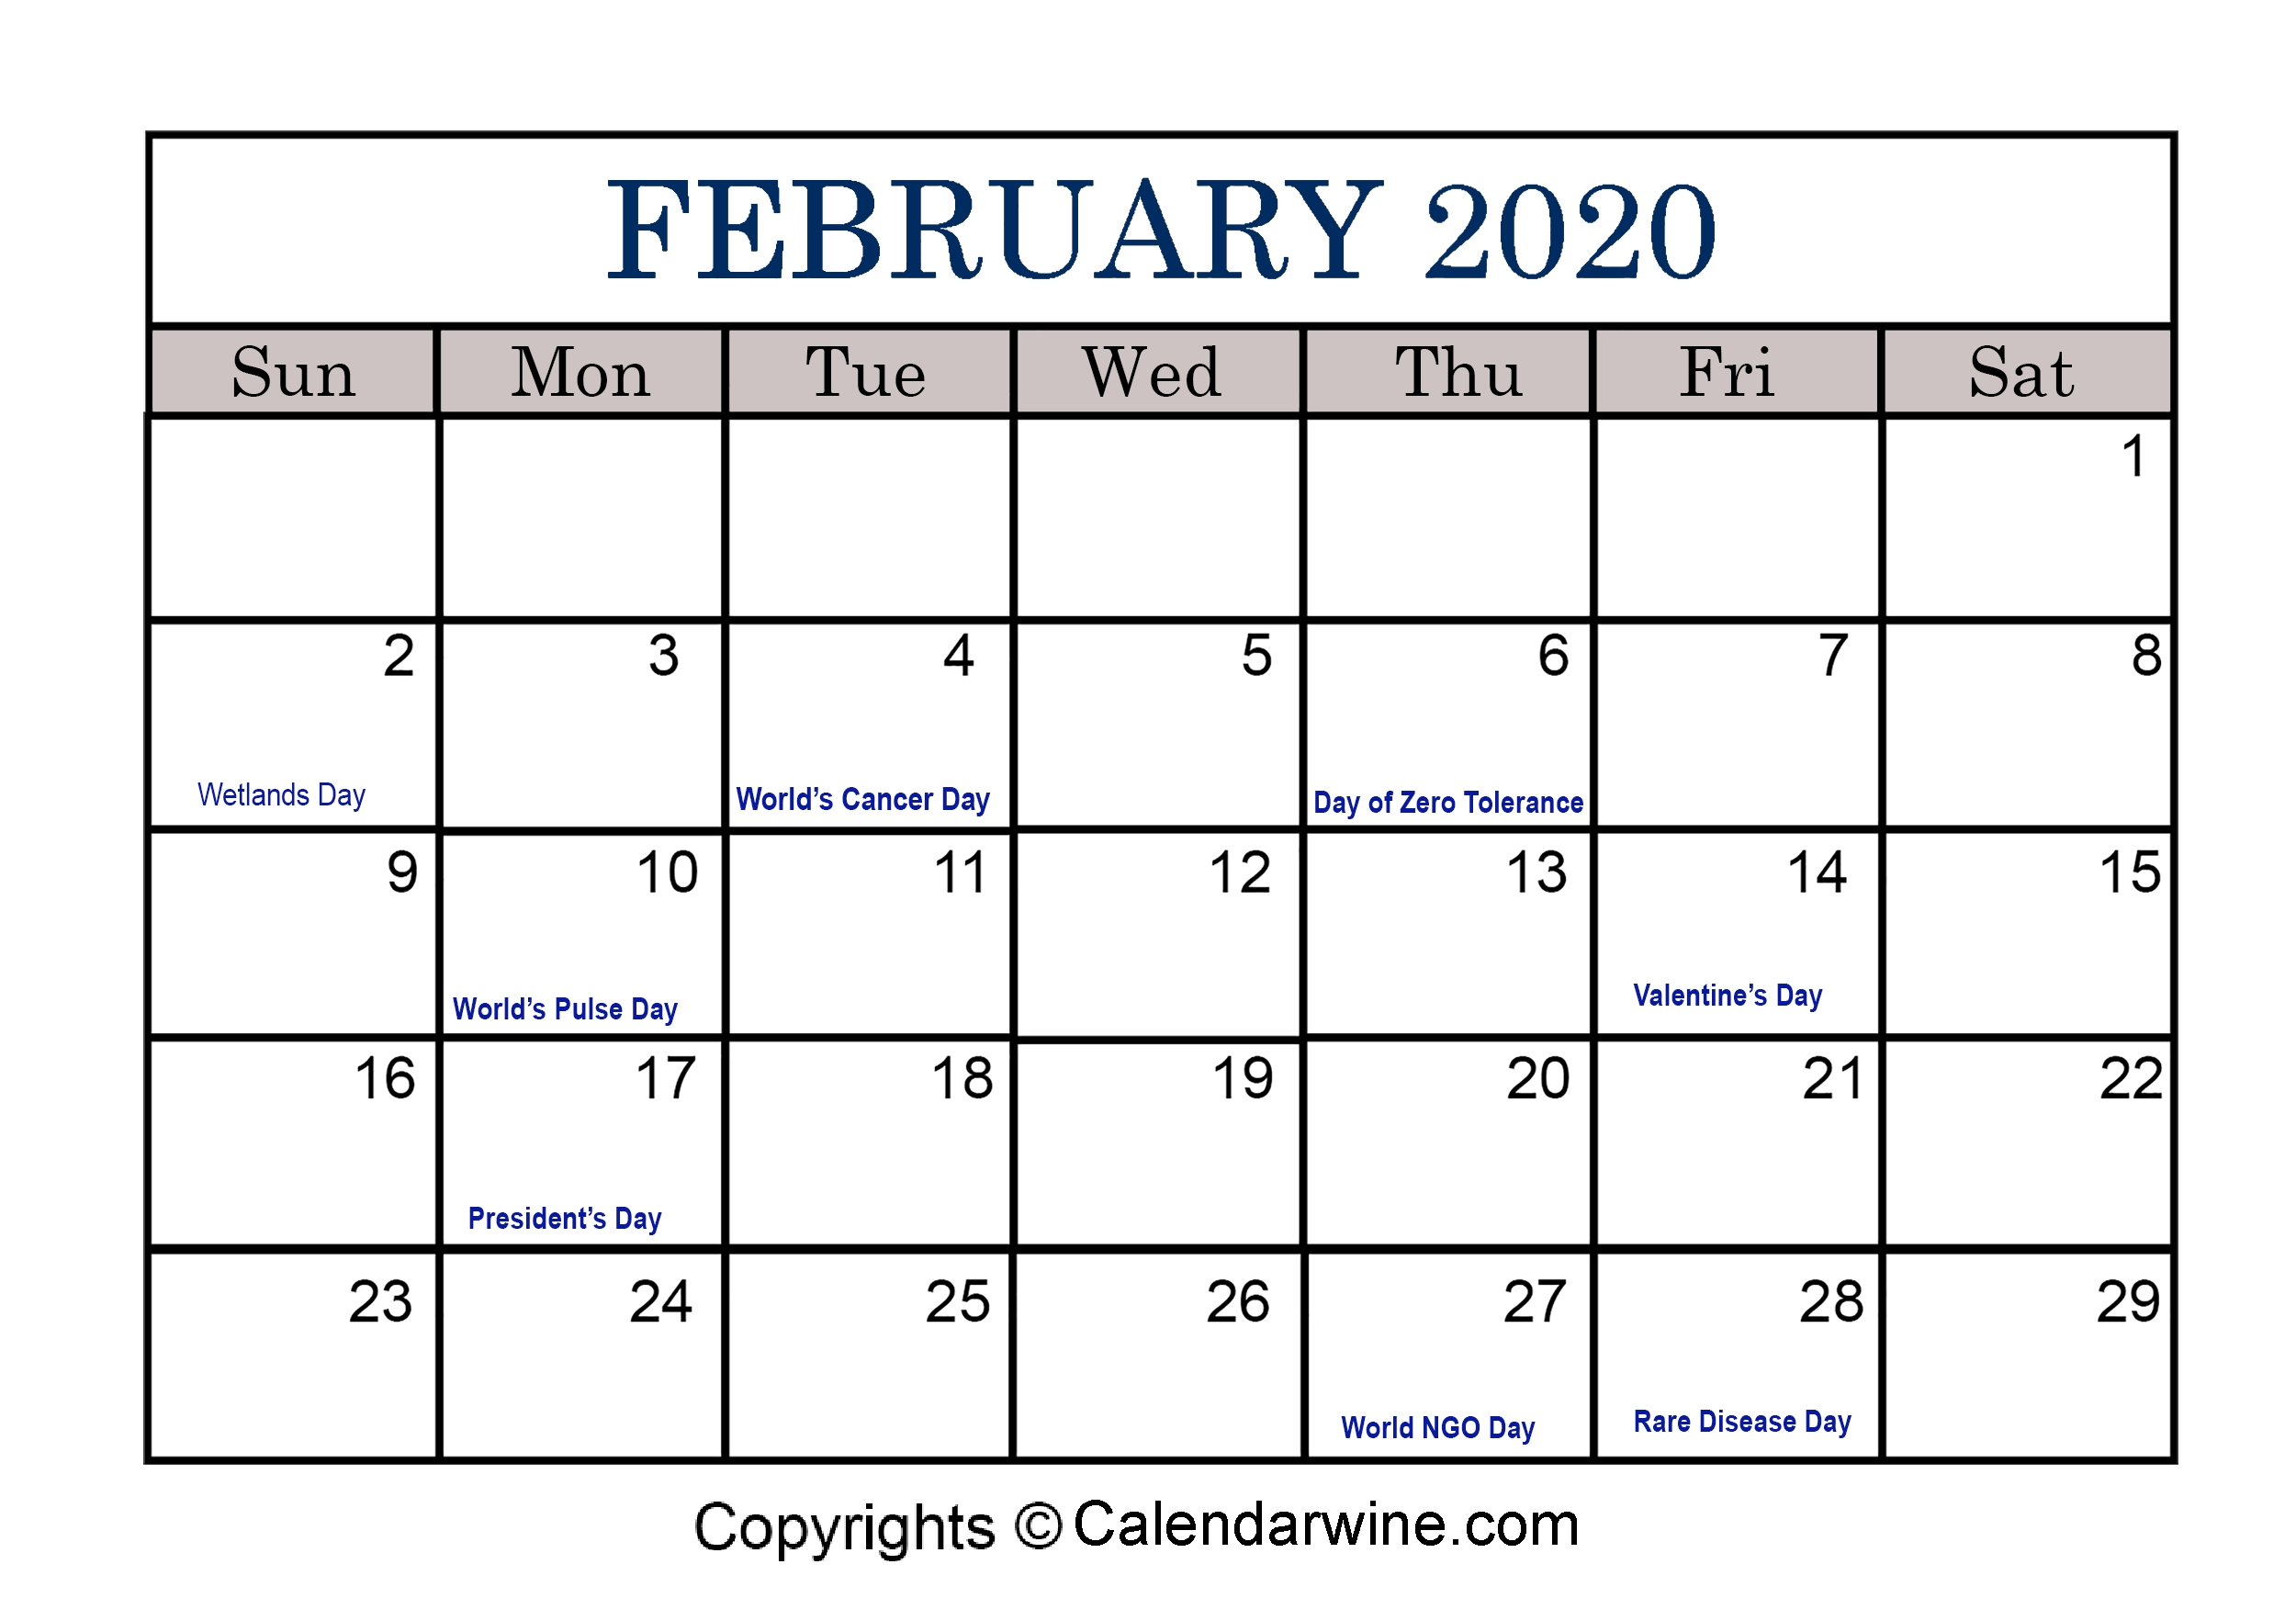 Full List Of February Holidays 2020 For Usa Uk Canada-2020 Monthly Calendars To Print With Jewish Holidays